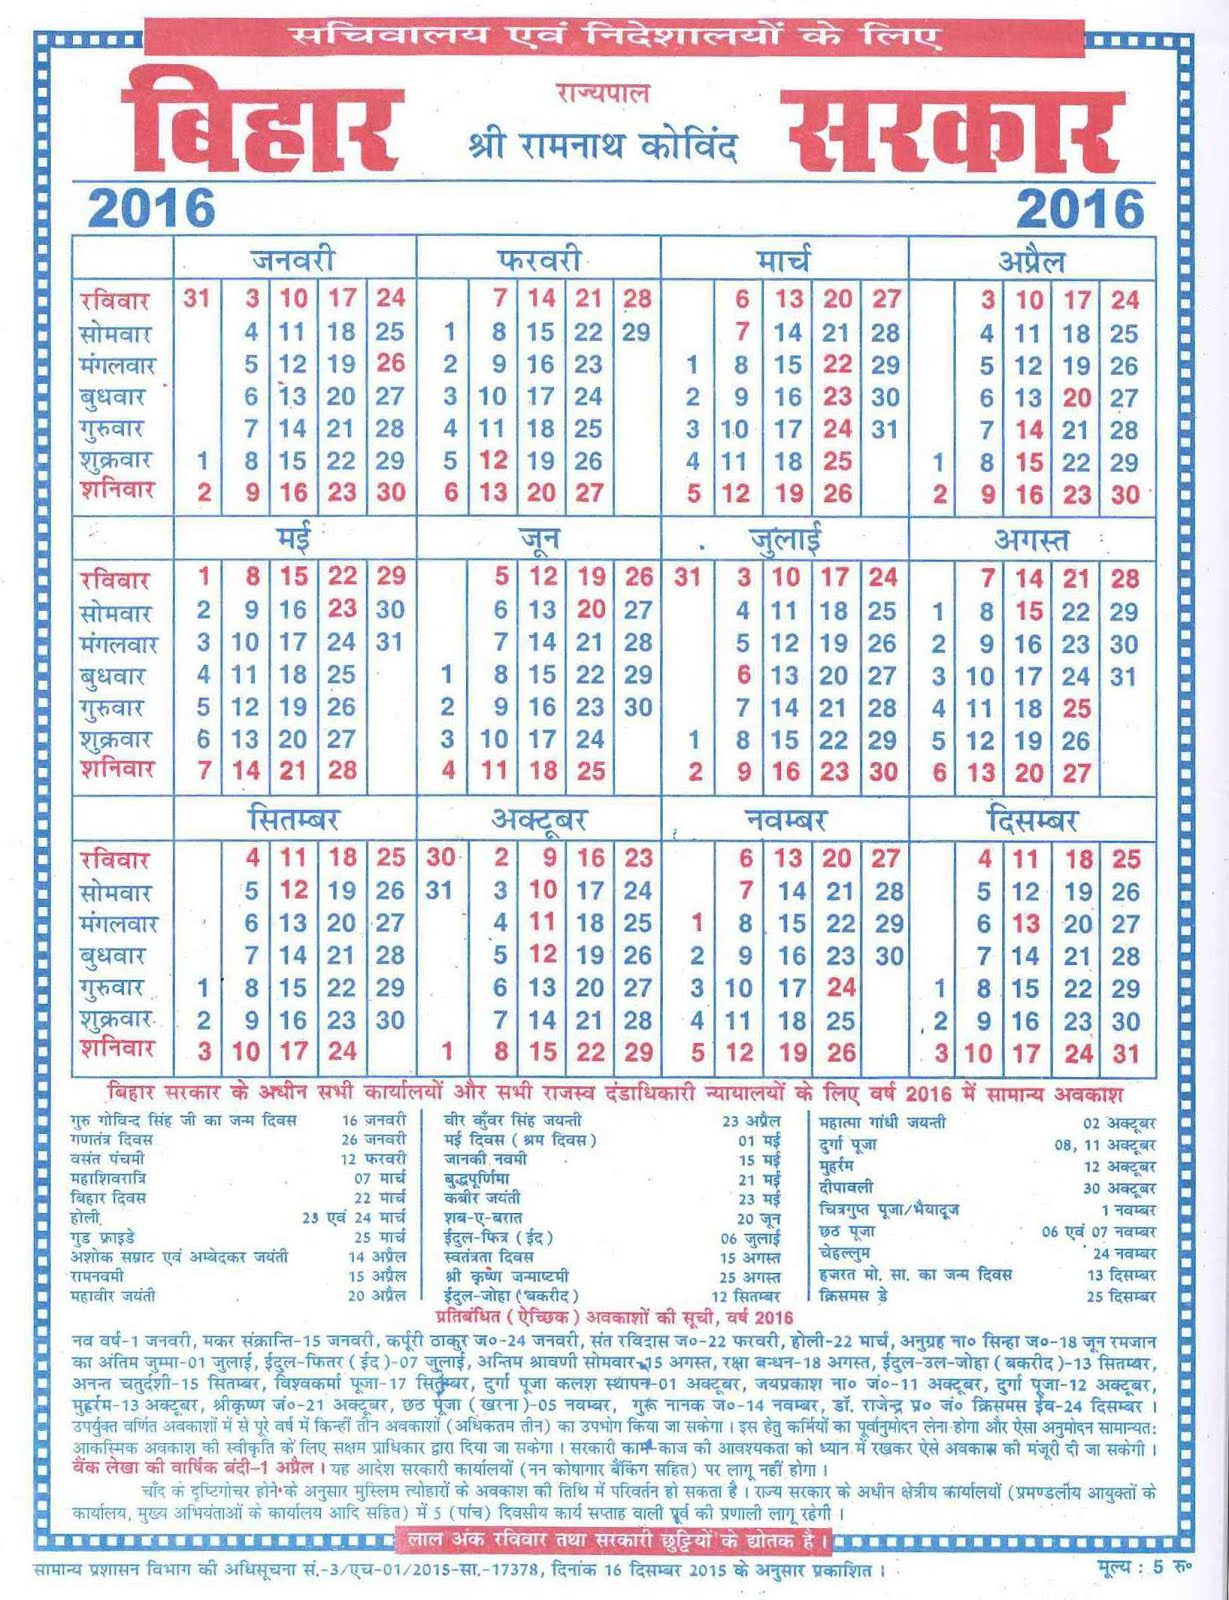 Bihar Government Calendar 2016 Download intended for Bihar Sarkar Calendar 2017